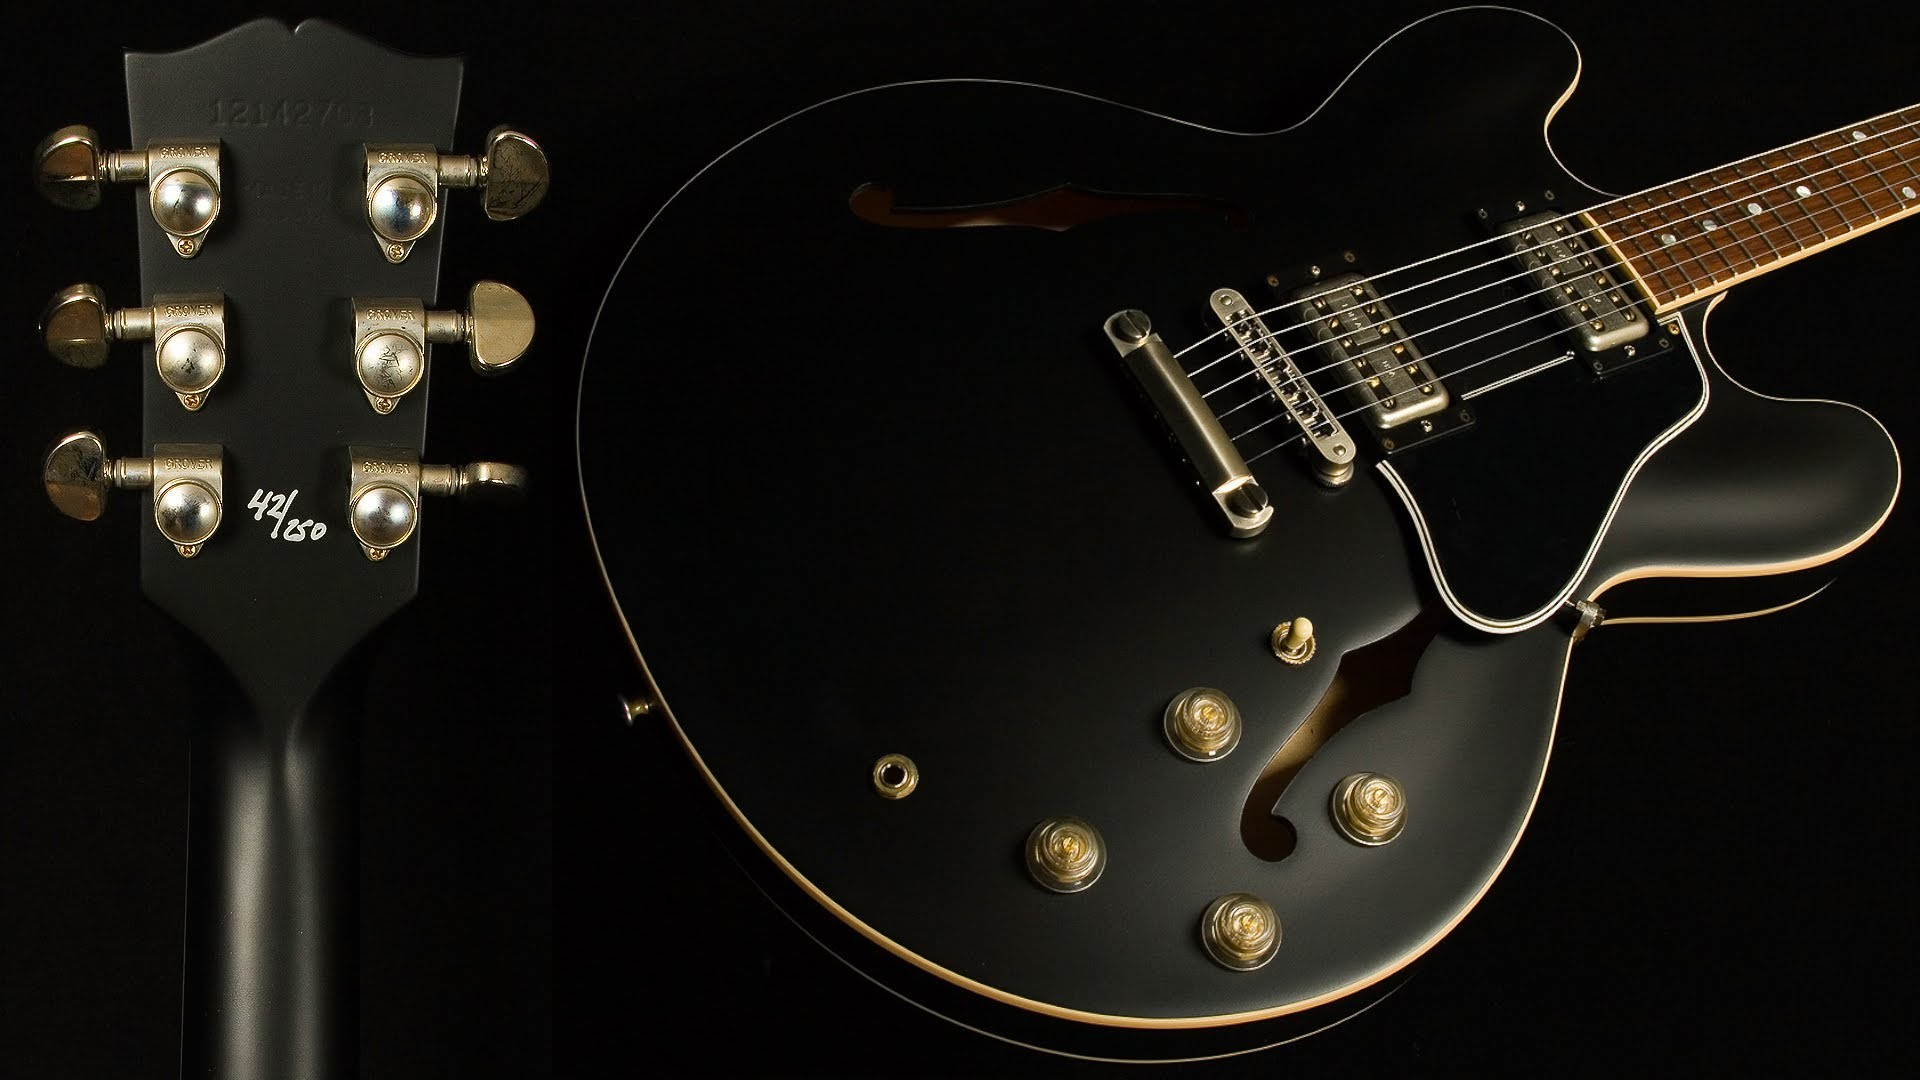 Gibson Les Paul Wallpaper 1920x1080